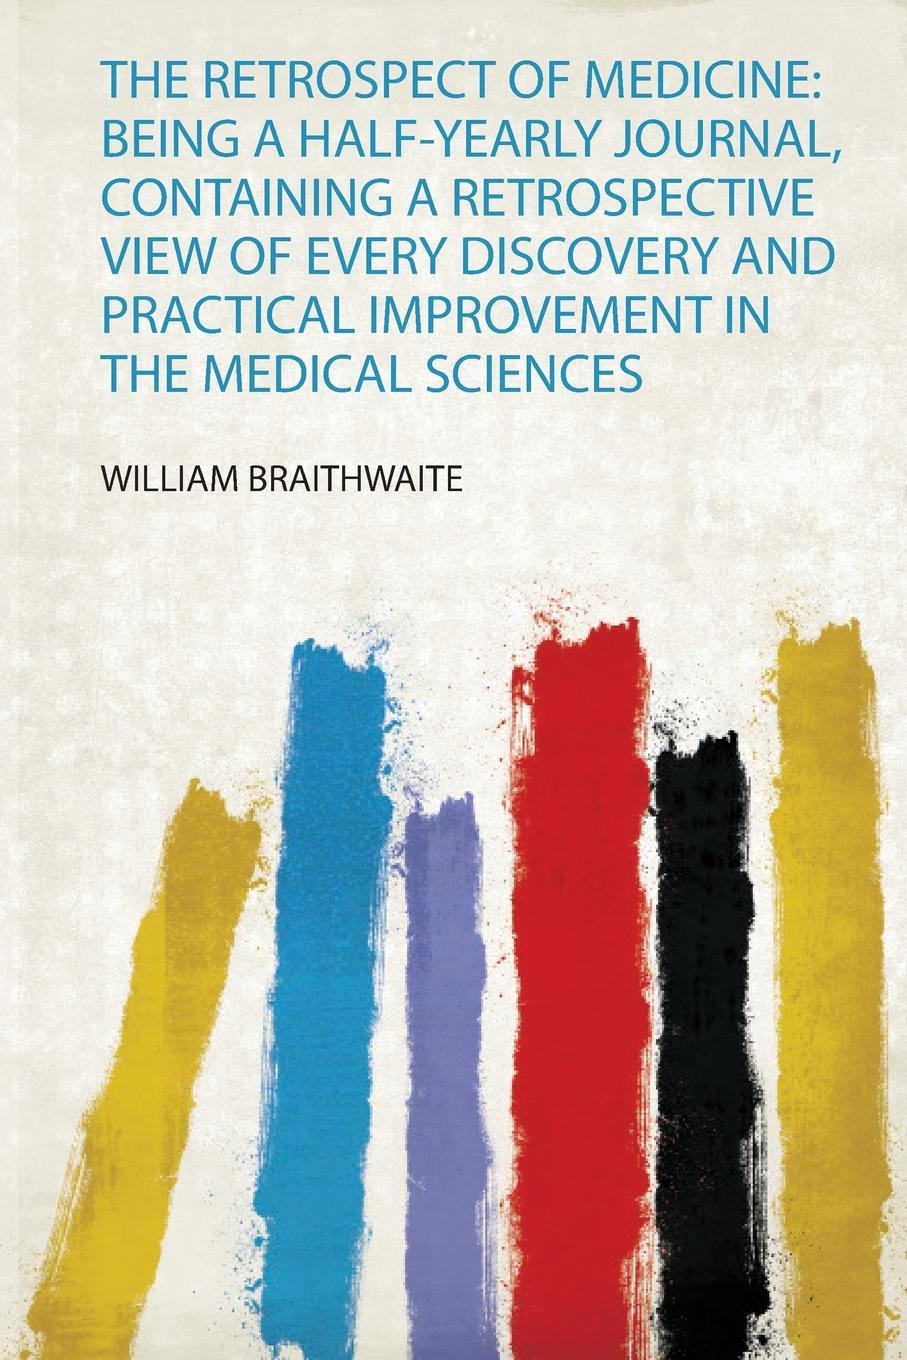 The Retrospect of Medicine. Being a Half-Yearly Journal, Containing a Retrospective View of Every Discovery and Practical Improvement in the Medical Sciences